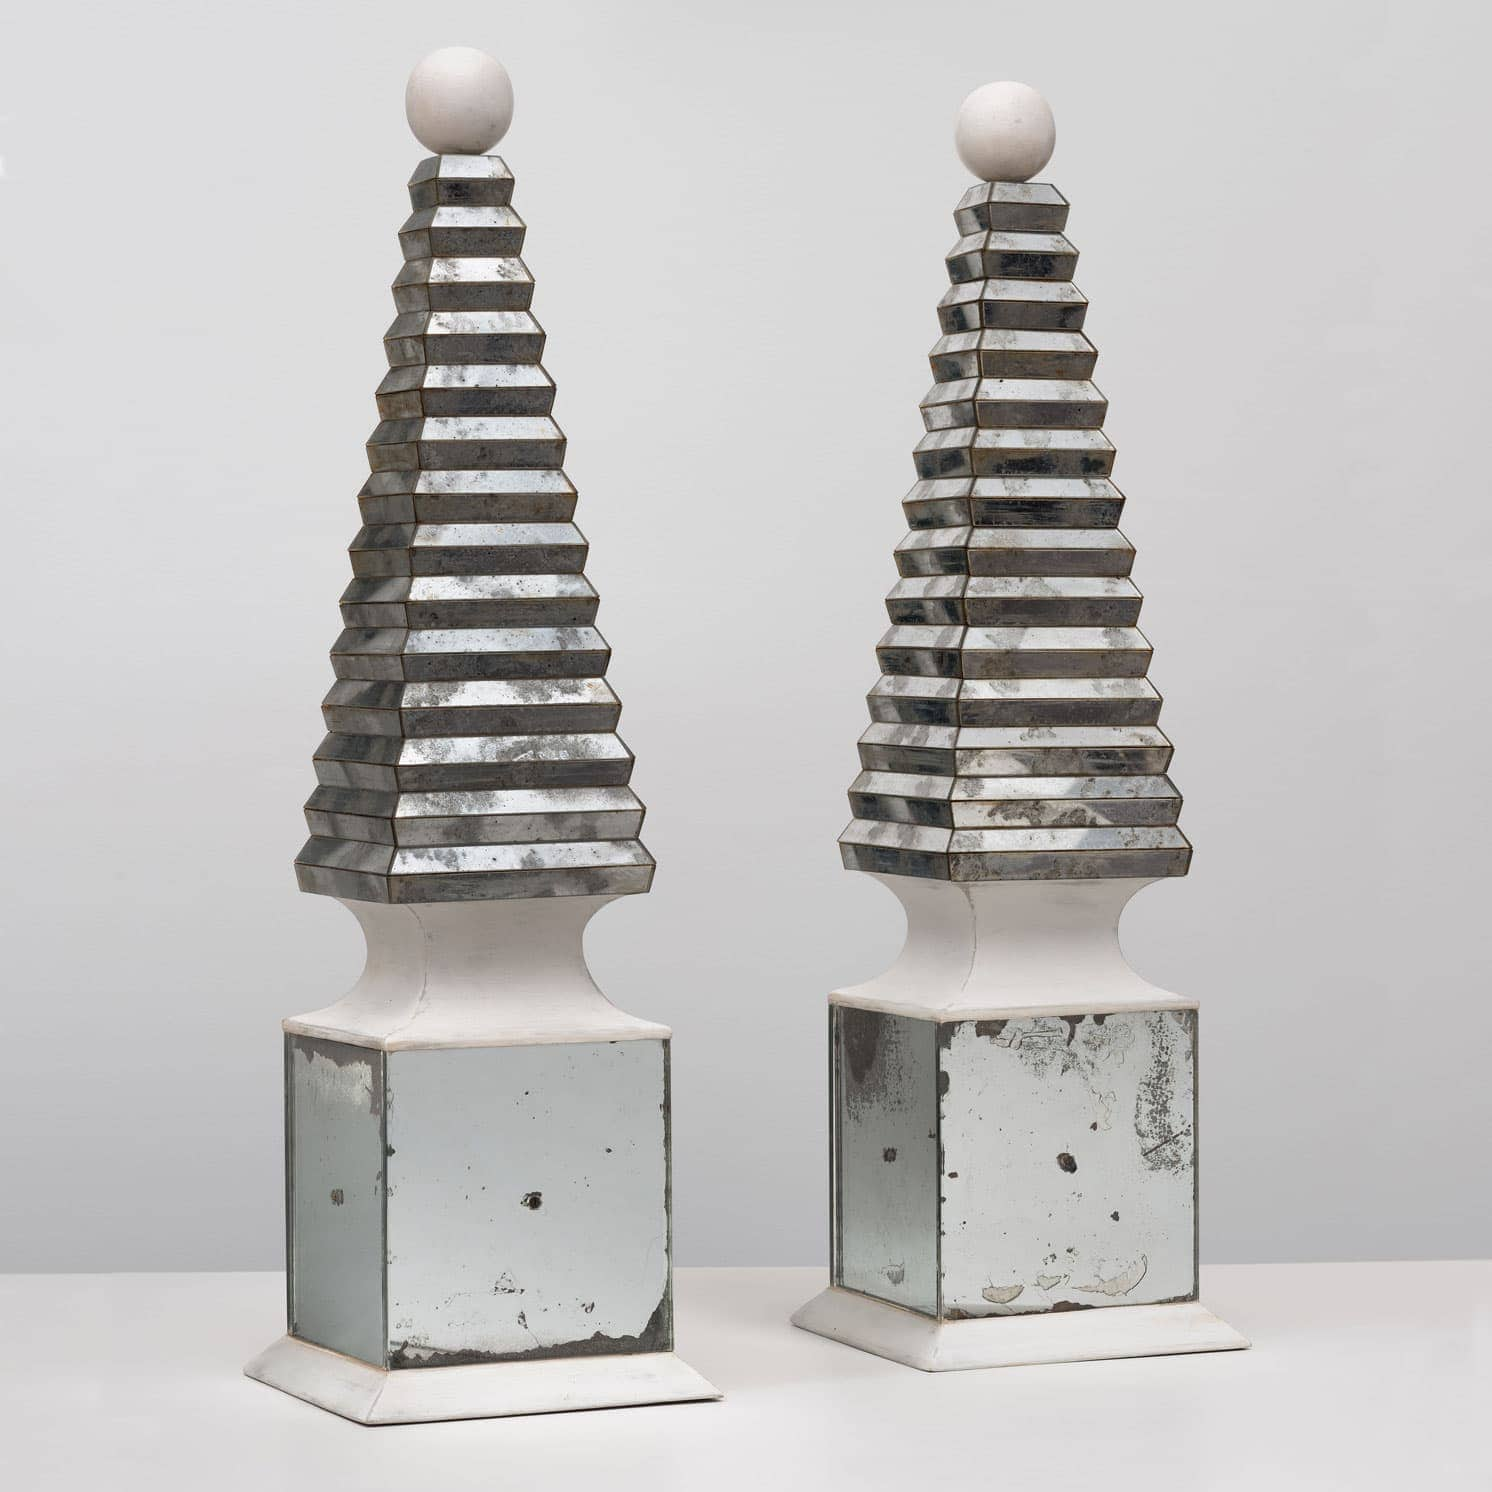 Serge Roche, Tall and rare pair of obelisks, vue 01